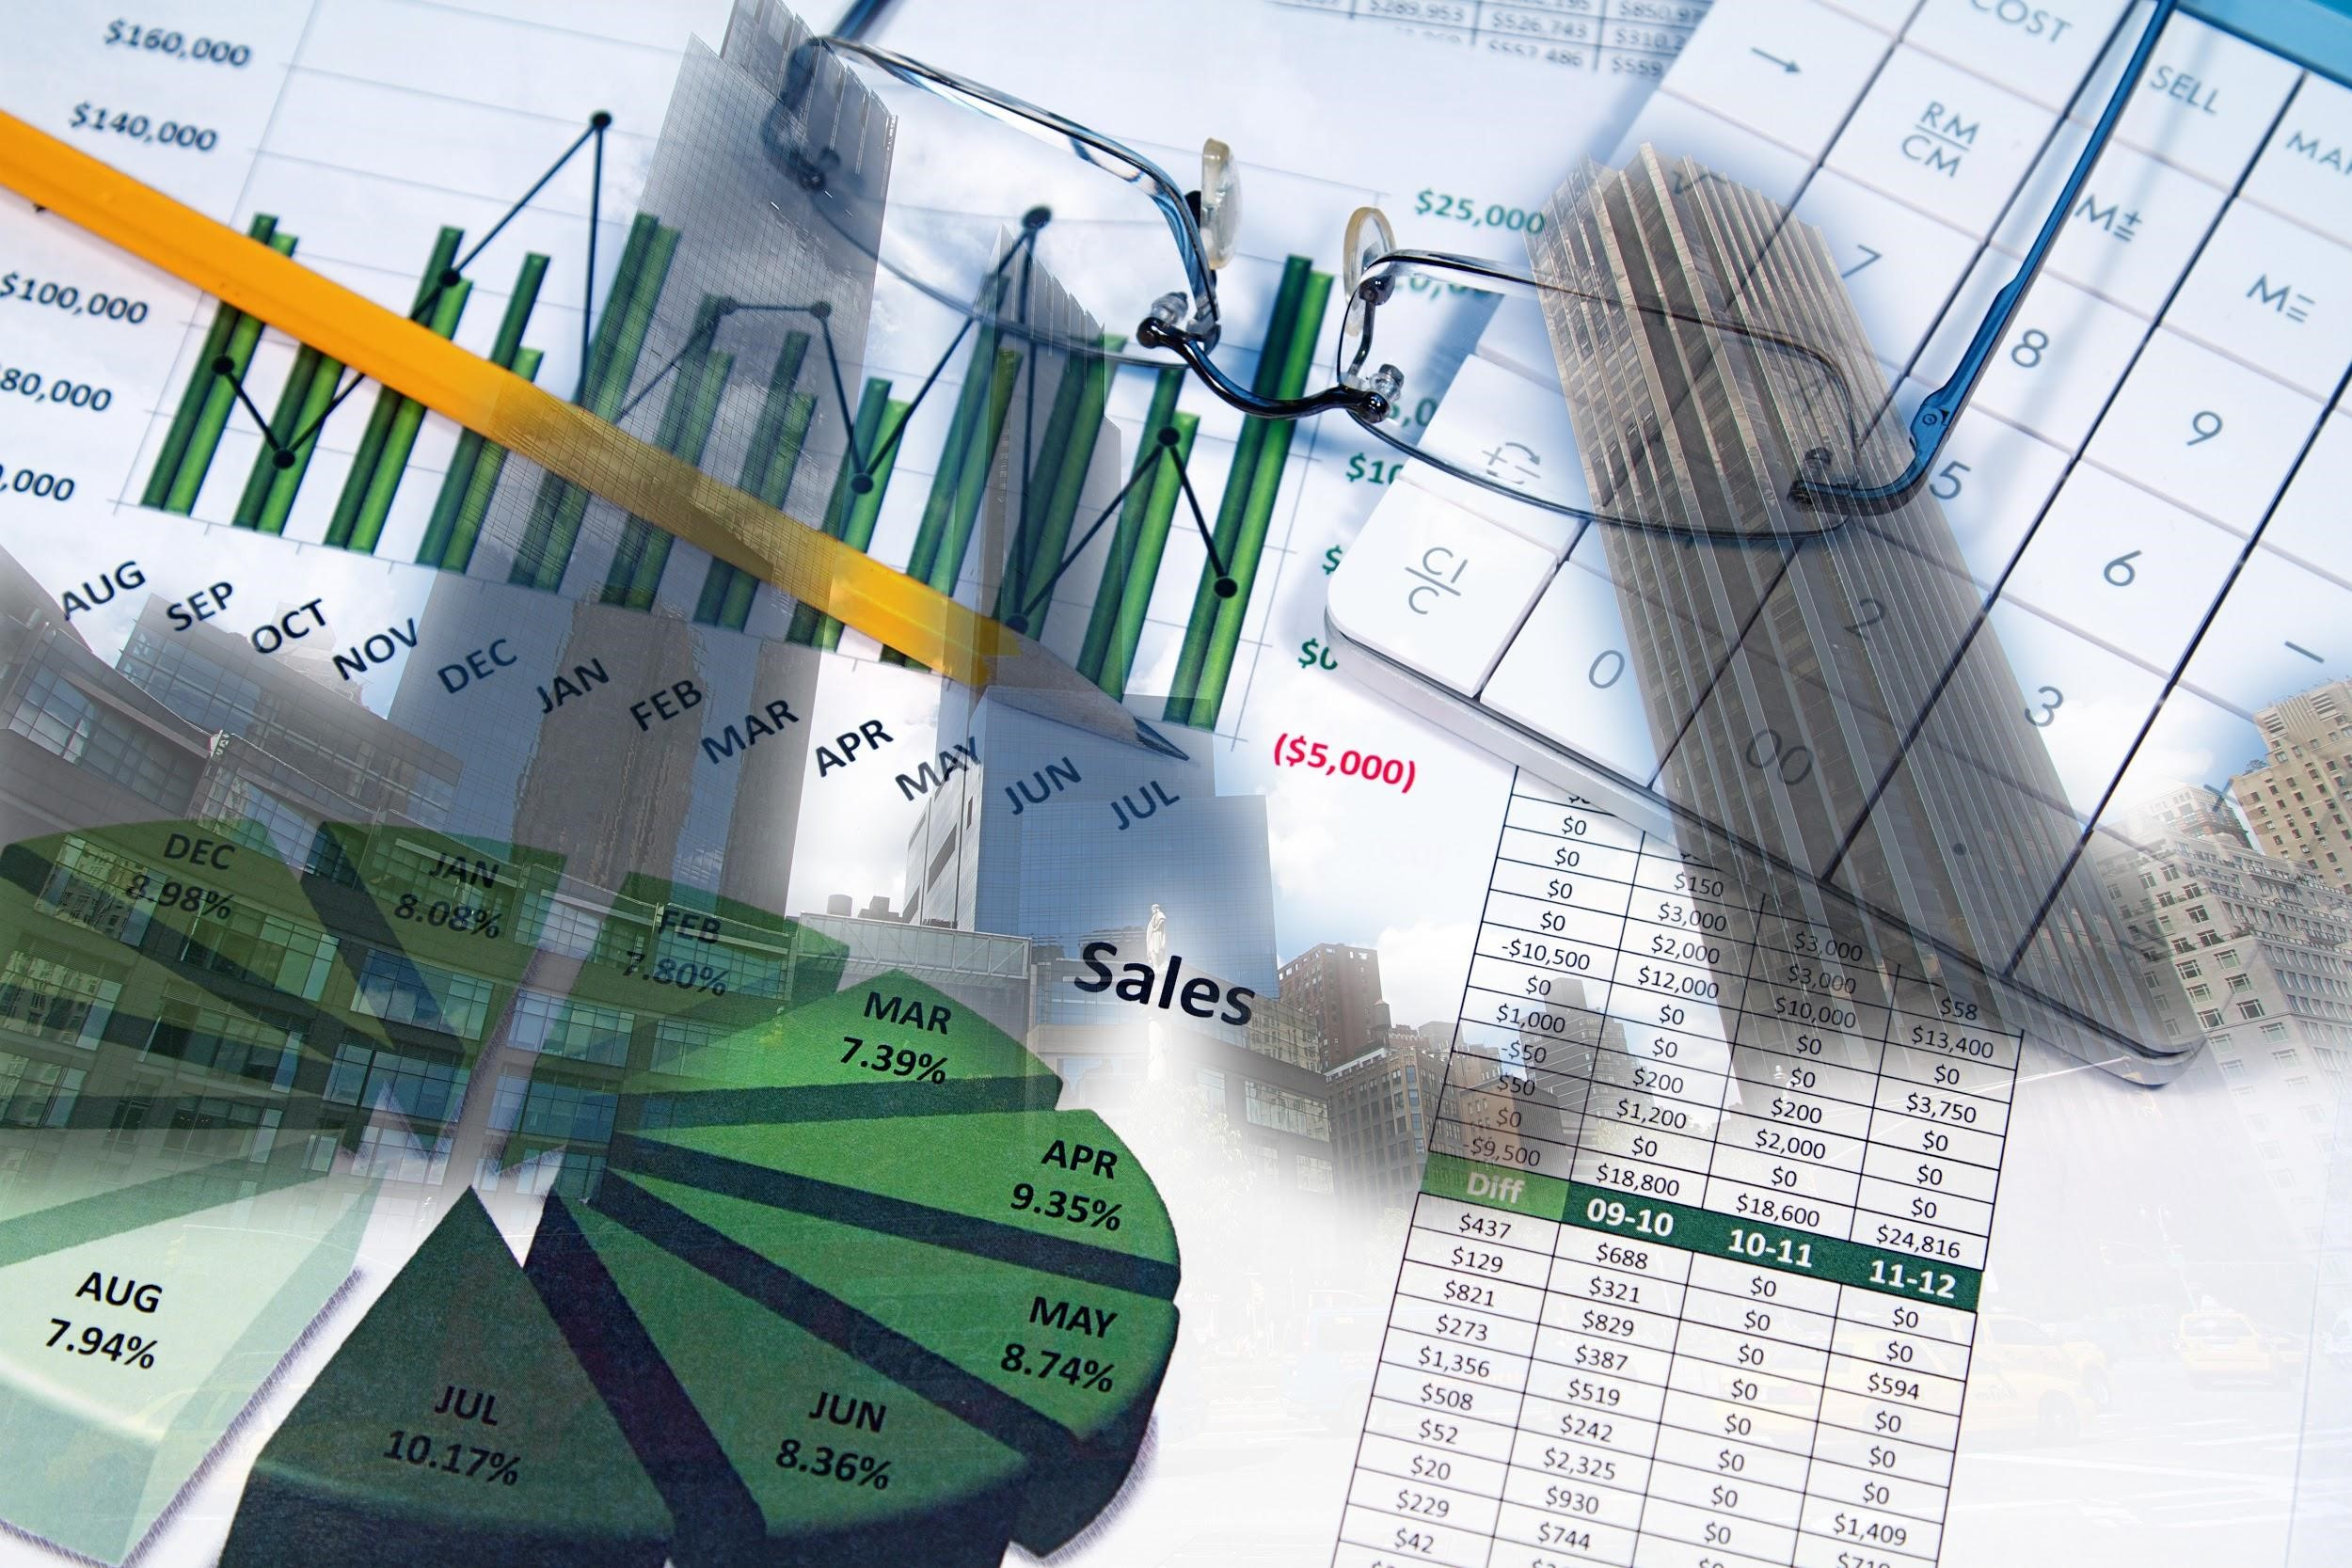 Efficient Lead Nurturing For Elevated Gross sales